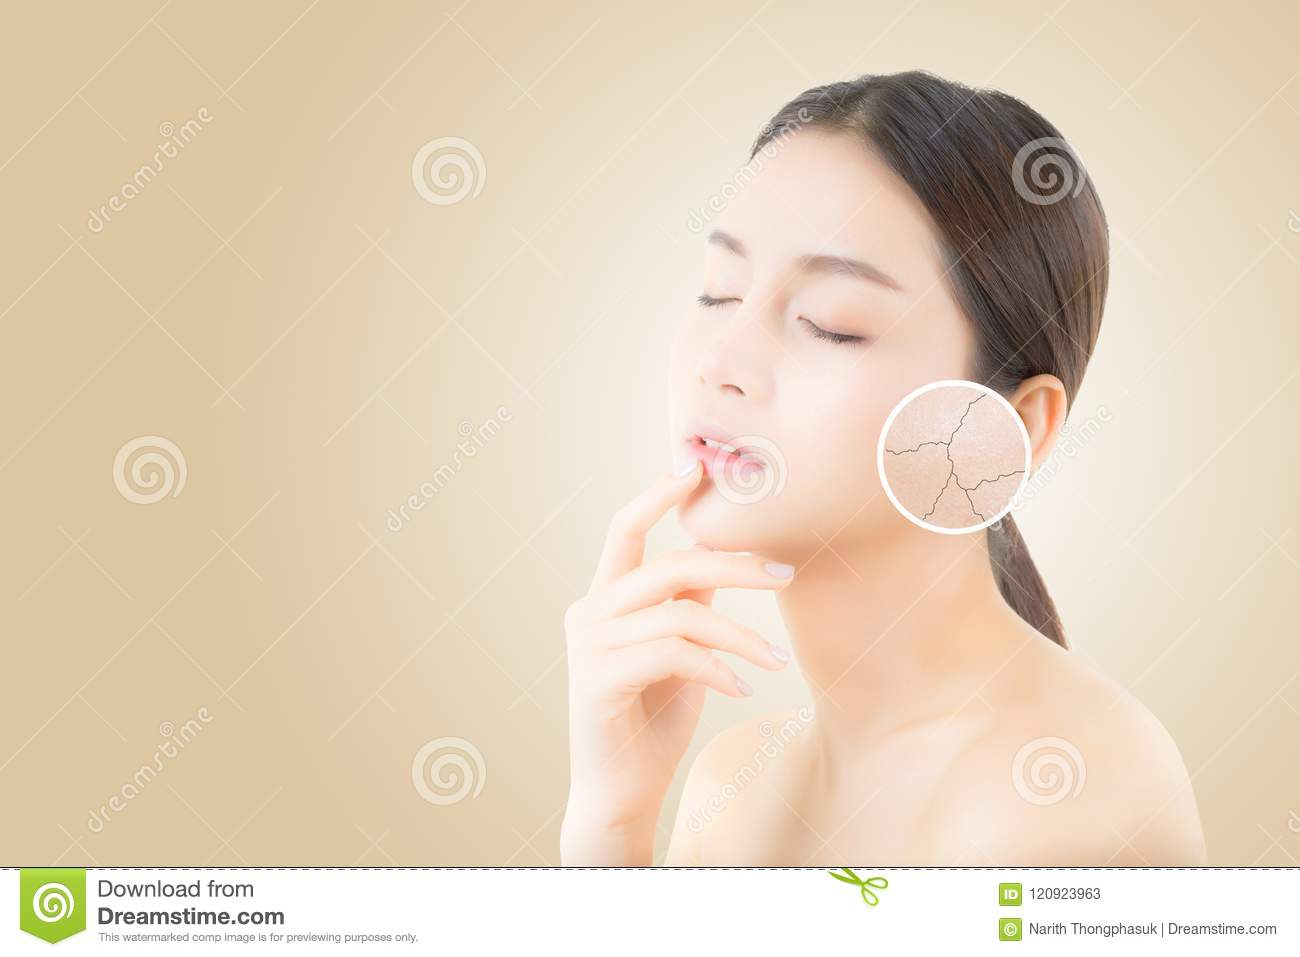 Skincare and health and cosmetics concept - beautiful asian young woman face with wrinkles